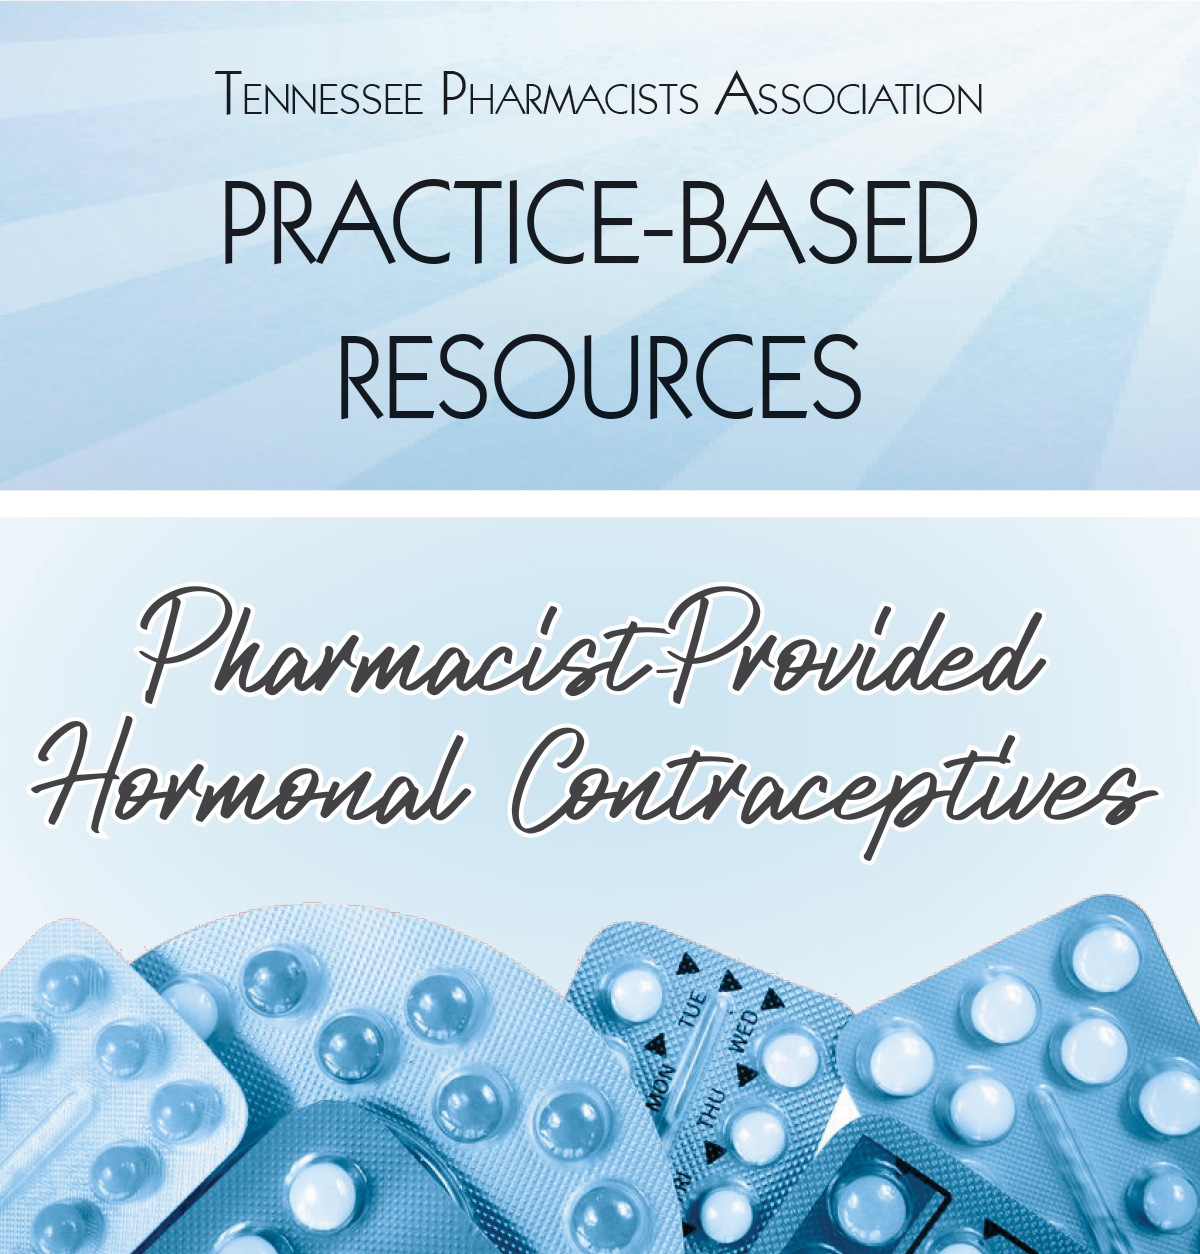 Pharmacist-Provided Contraceptives banner